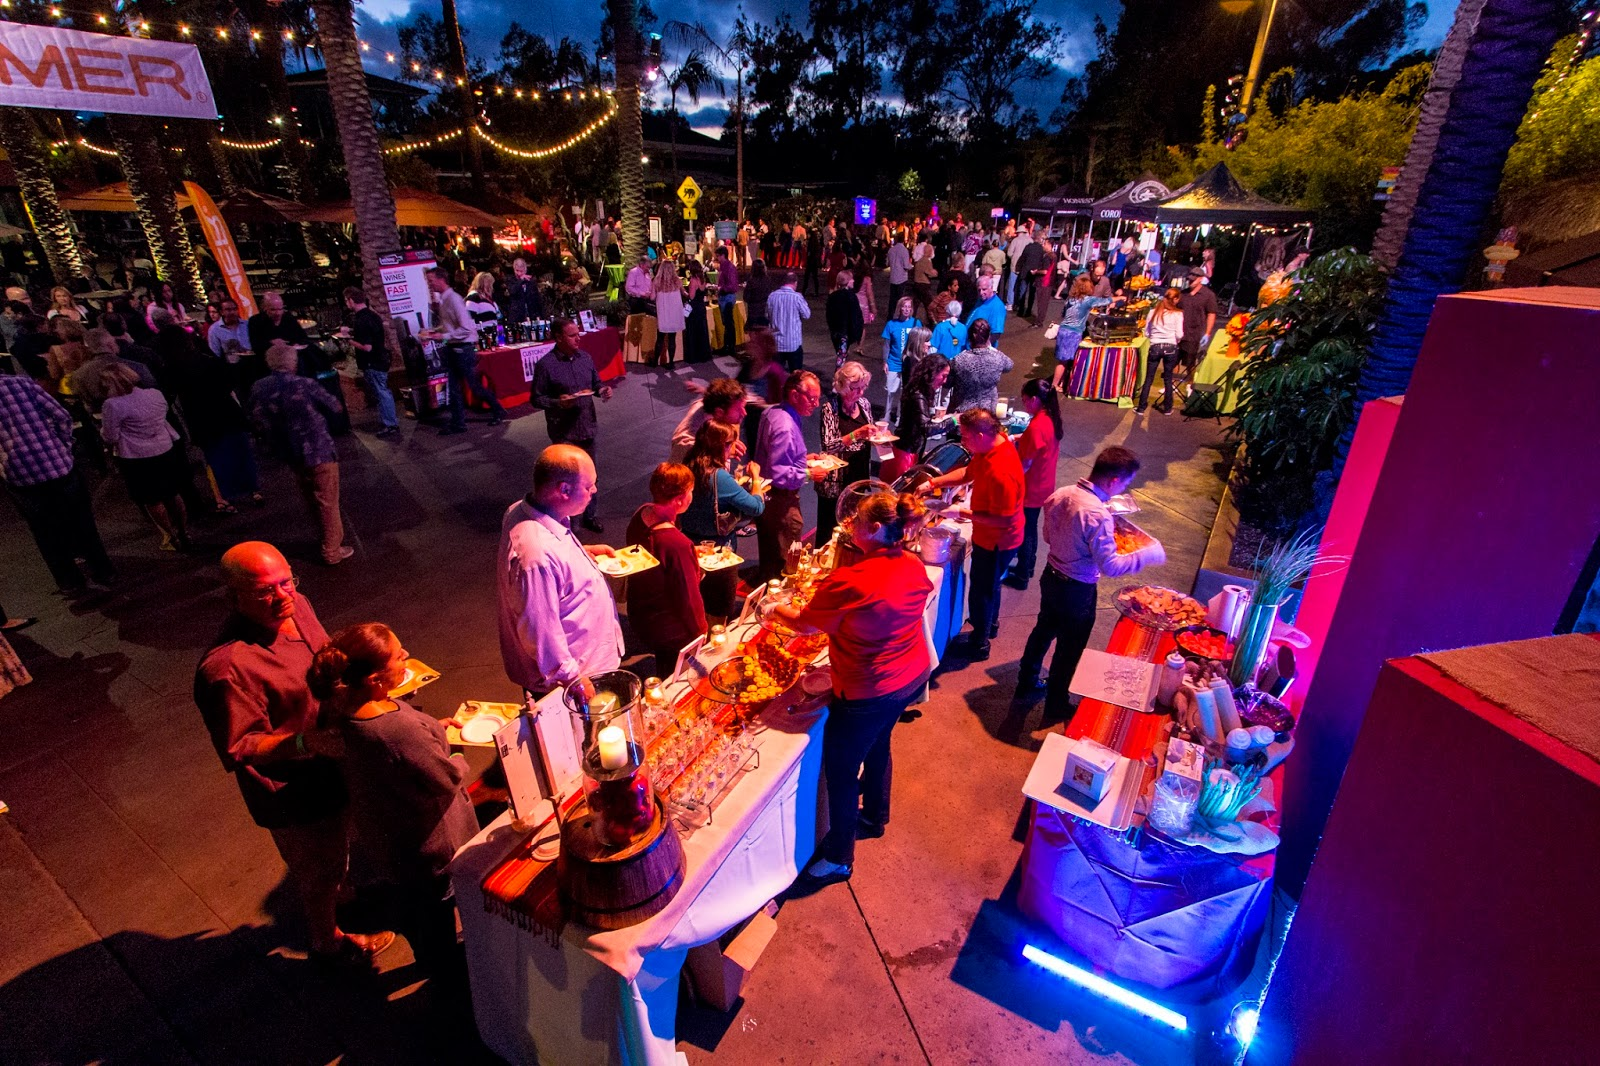 Evening Event at the Santa Fe Wine and Brew Celebration